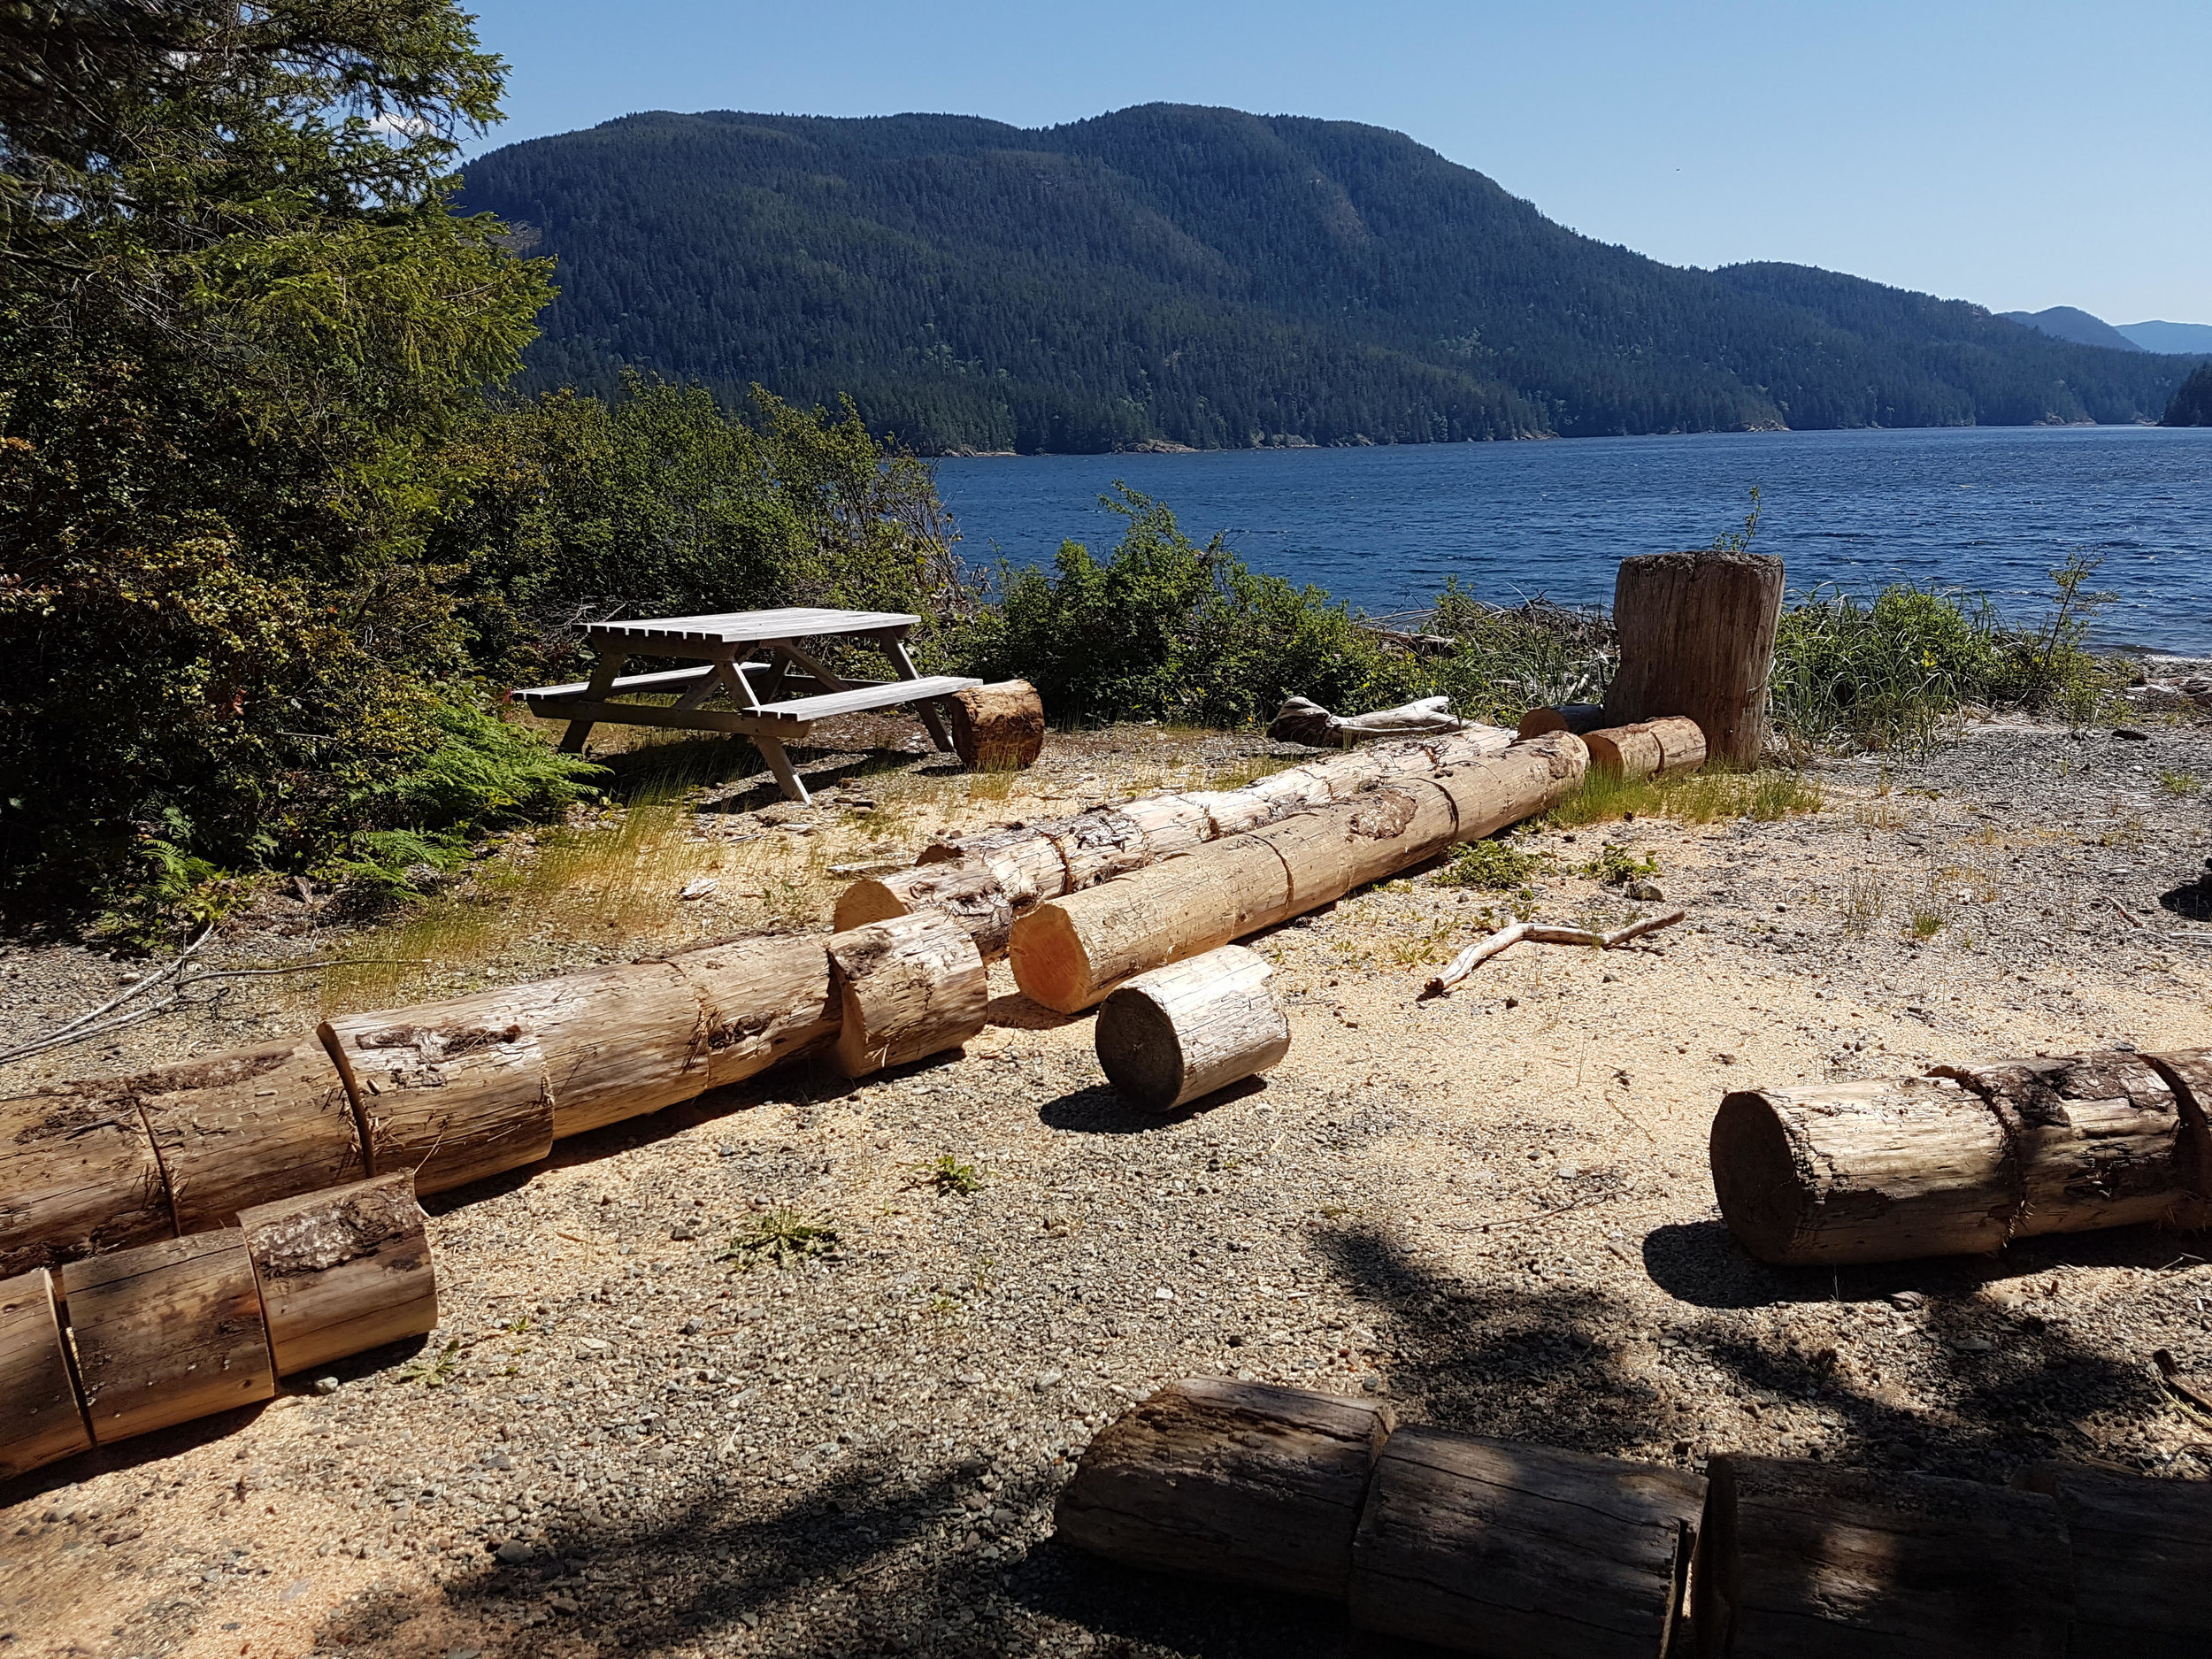 Now Open: Macktush Campsite - 80 campsites on the north shore of the Alberni Inlet with a playground and fantastic boating, fishing, and windsurfing opportunities.Book now